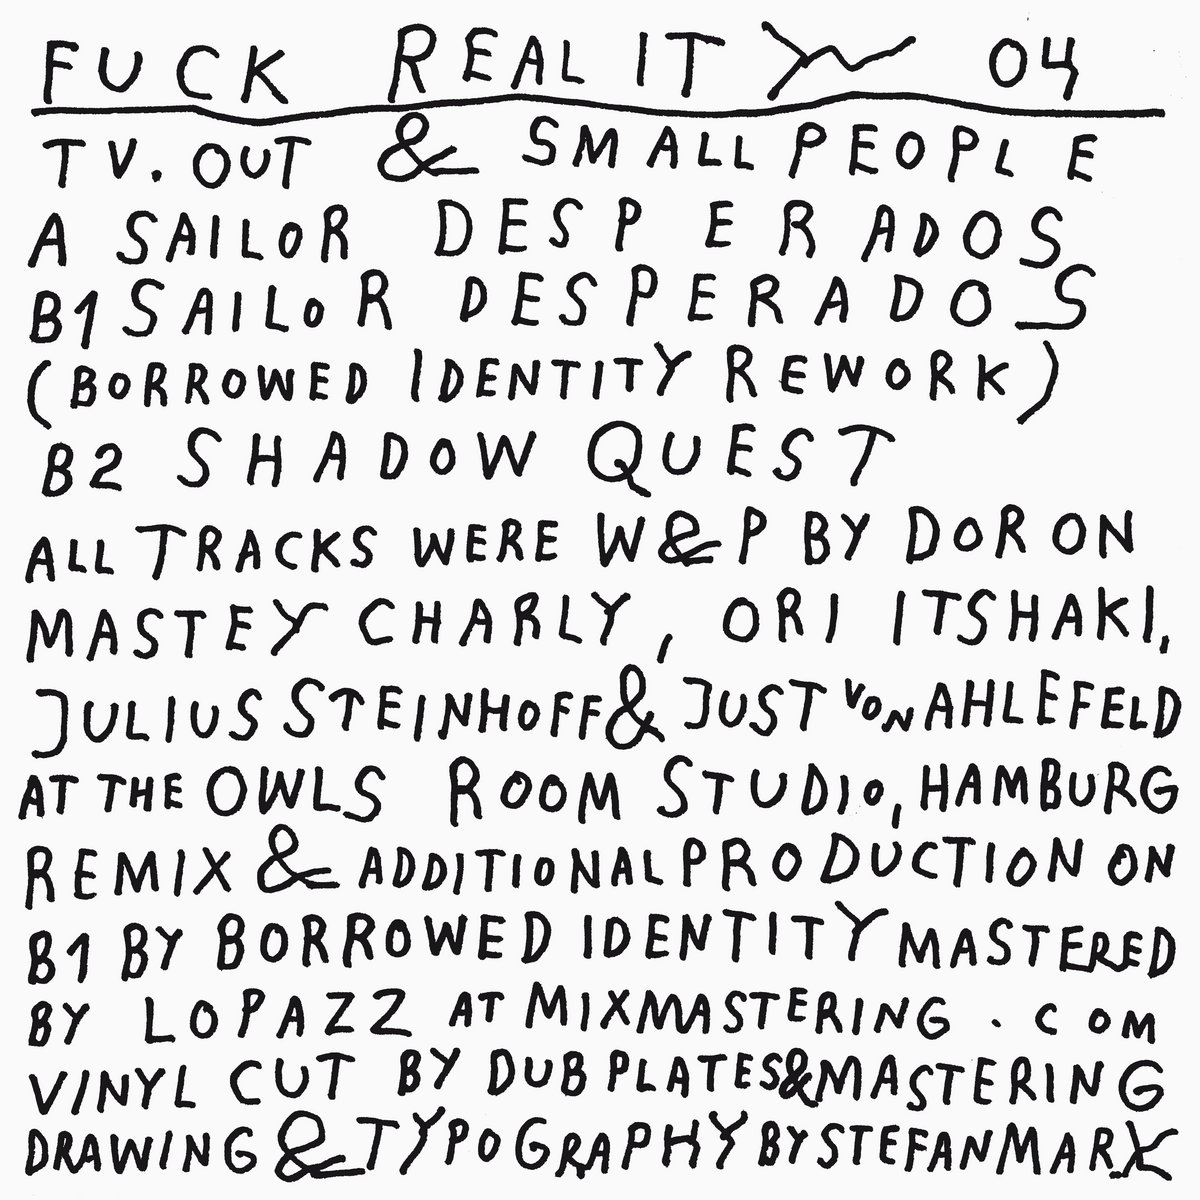 fuck reality 04 - tv.out & smallpeople // borrowed identity rework